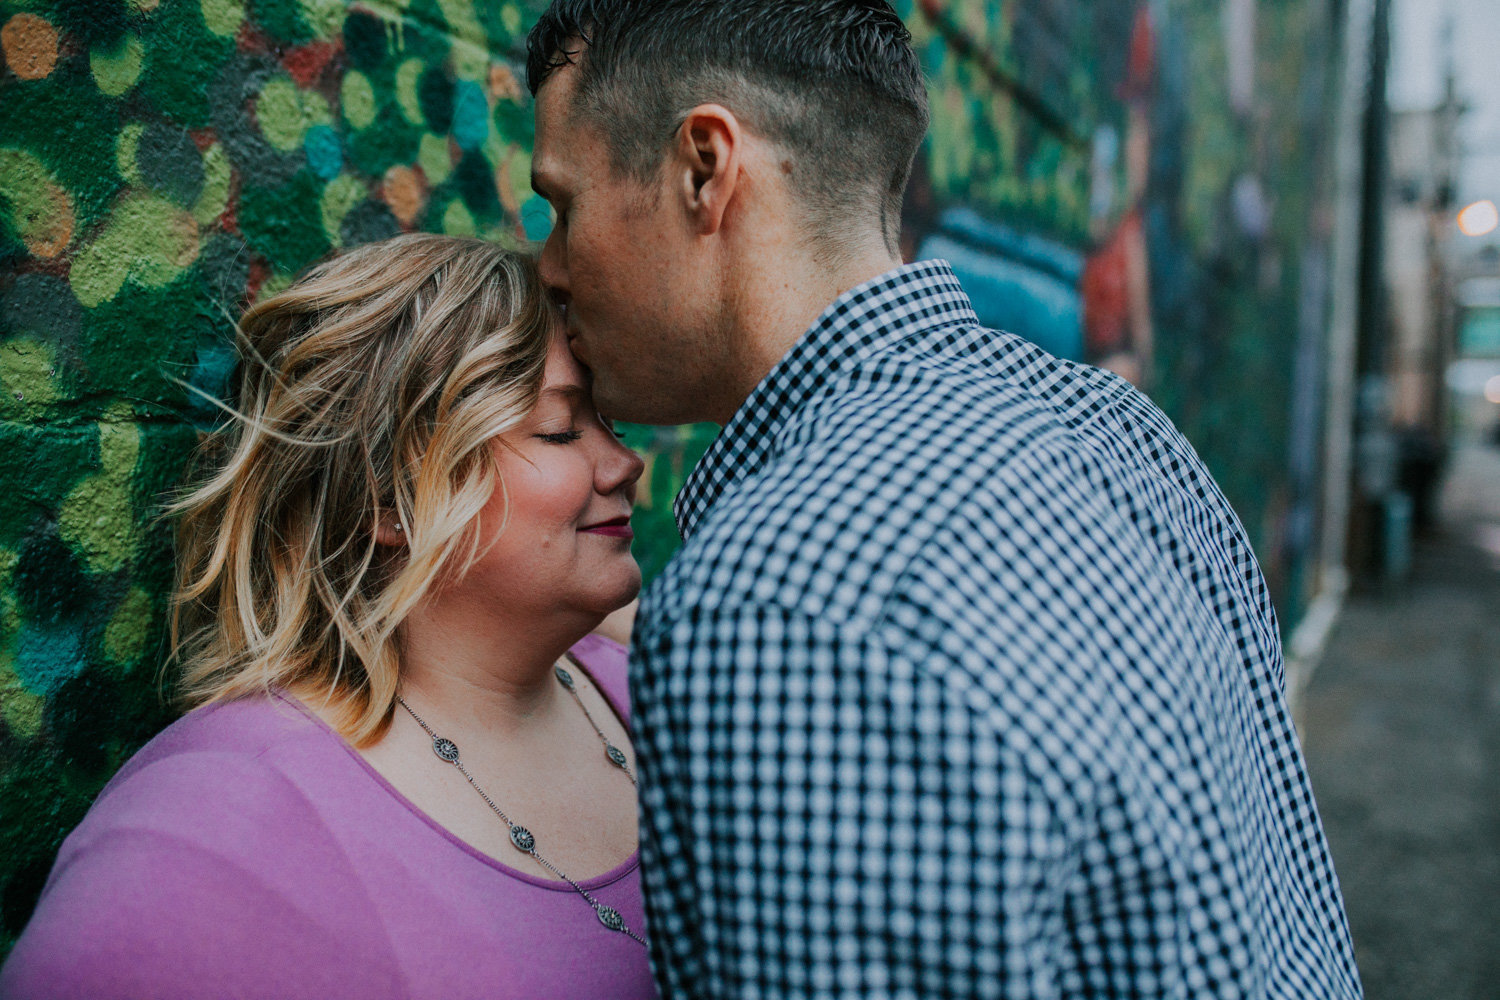 Engagement-Photographer-Lafayette-Indiana-27